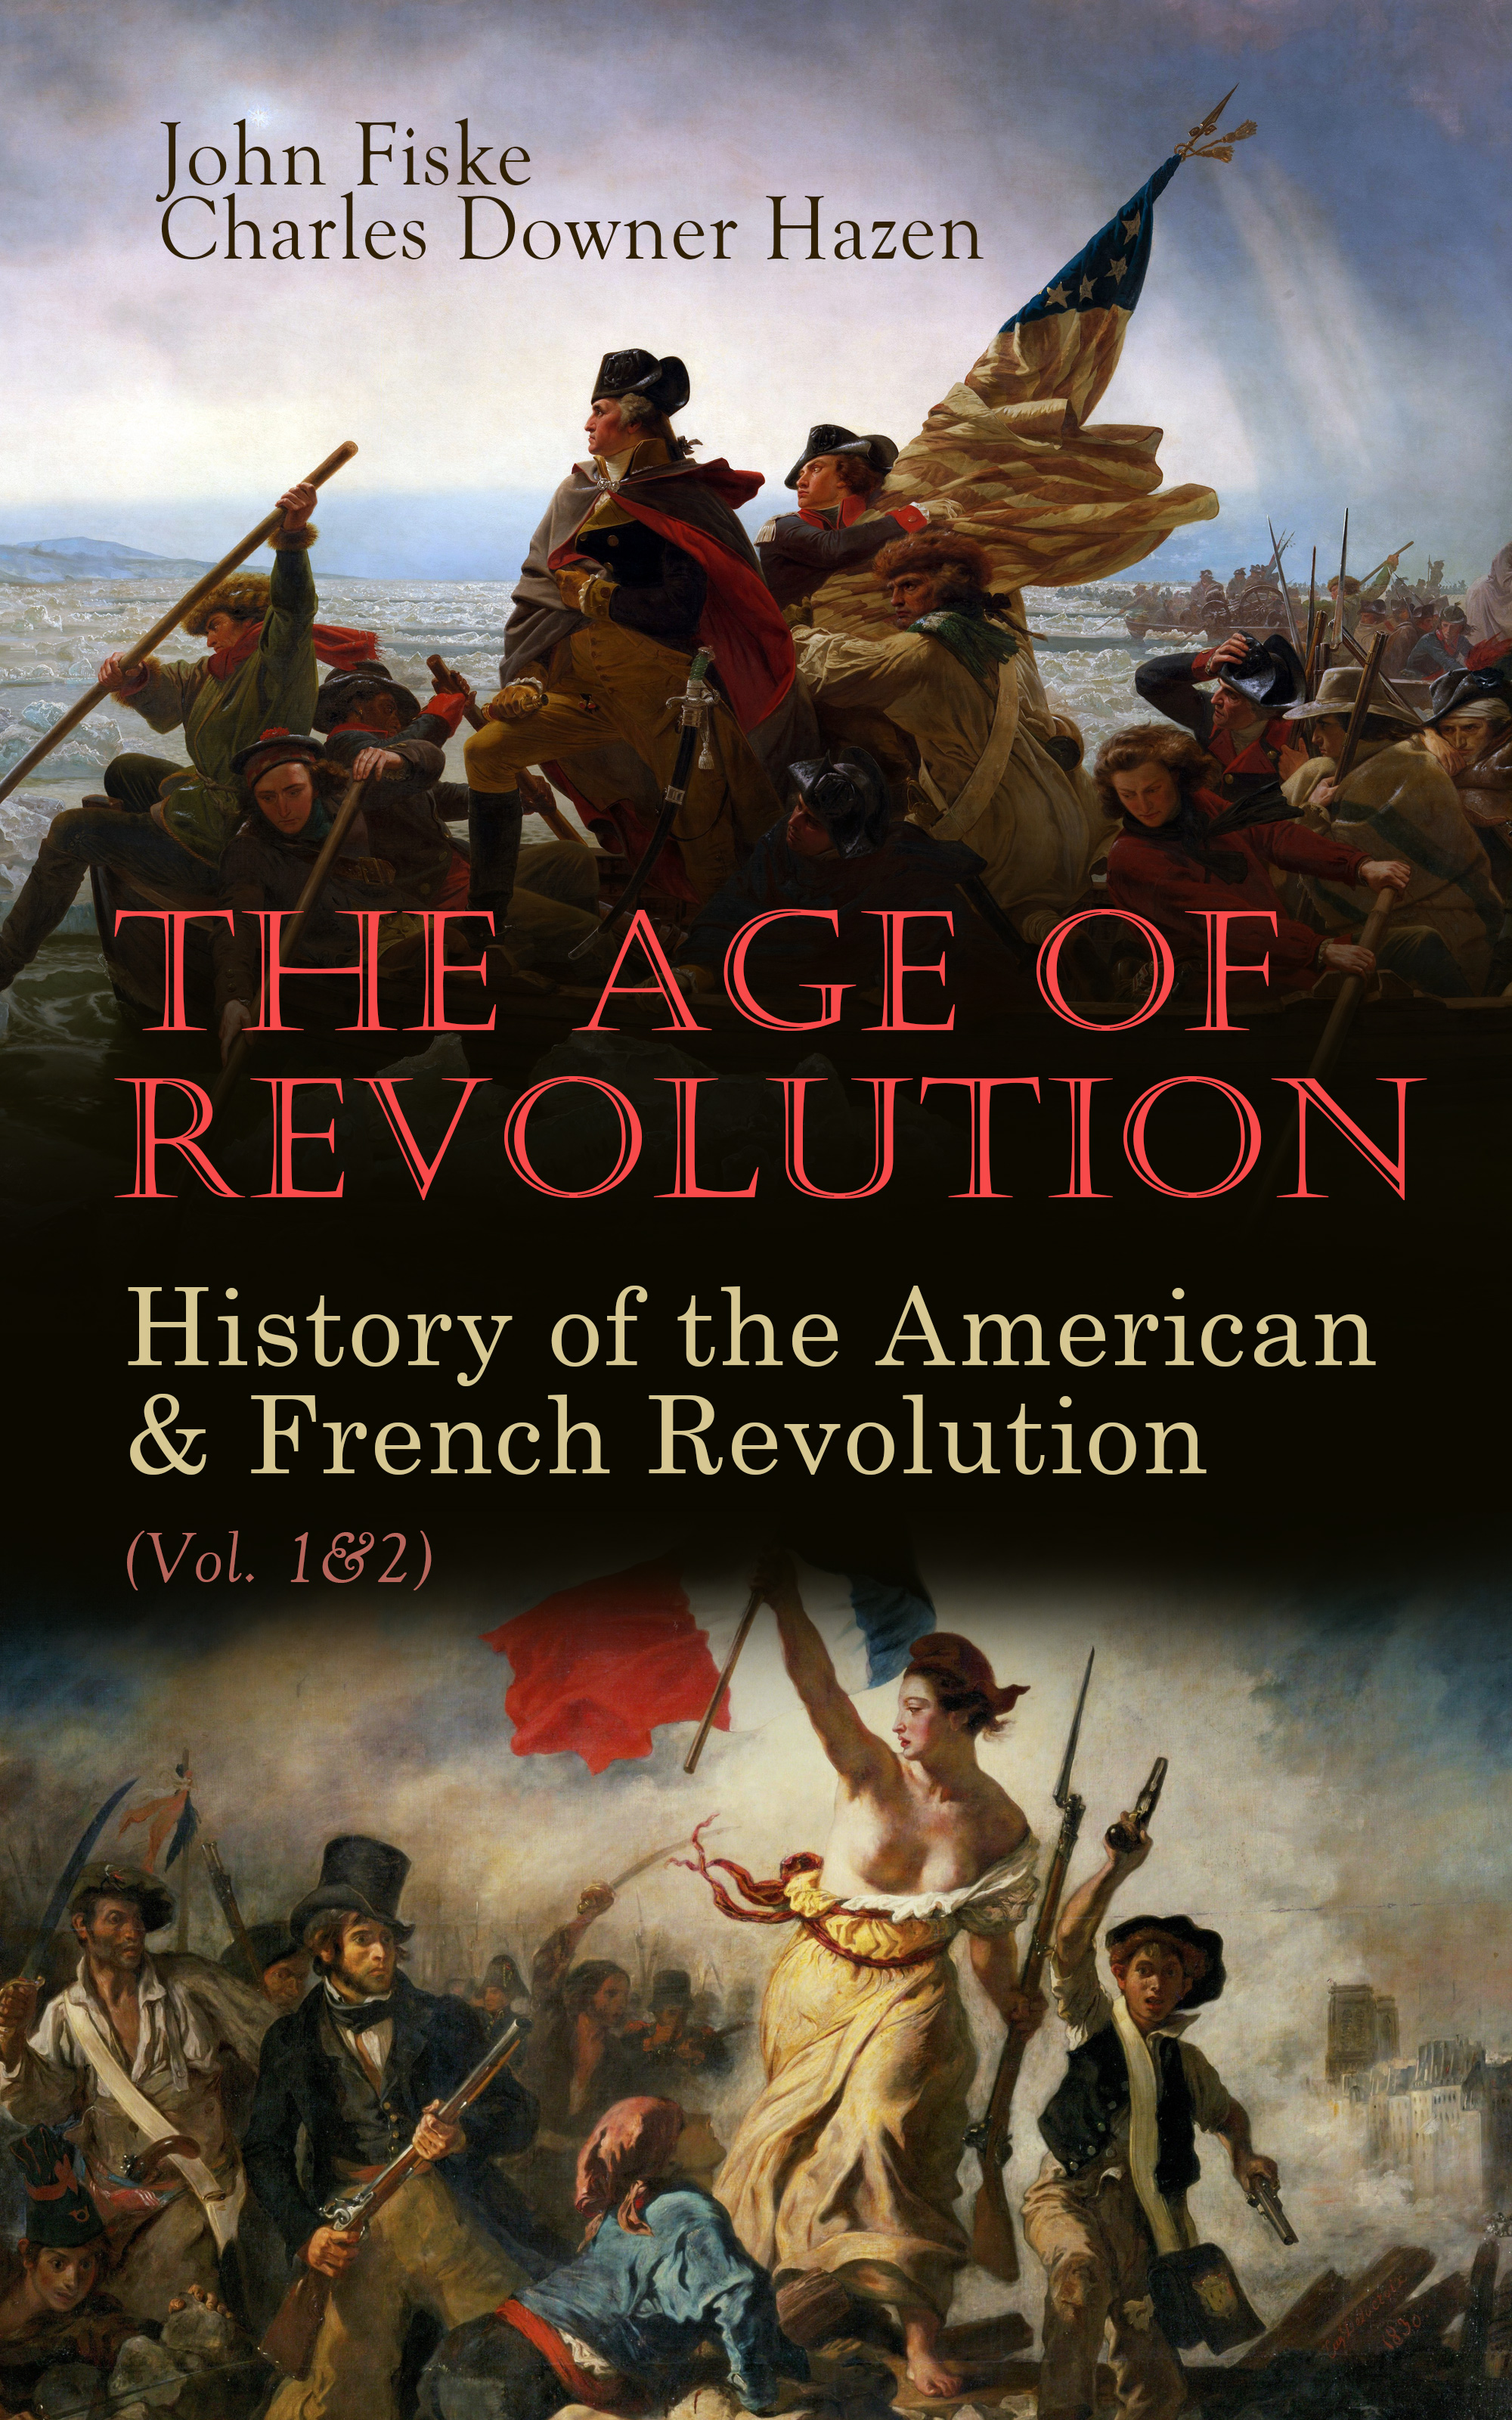 Fiske John The Age of Revolution: History of the American & French Revolution (Vol. 1&2) принц the revolution prince and the revolution when doves cry lp